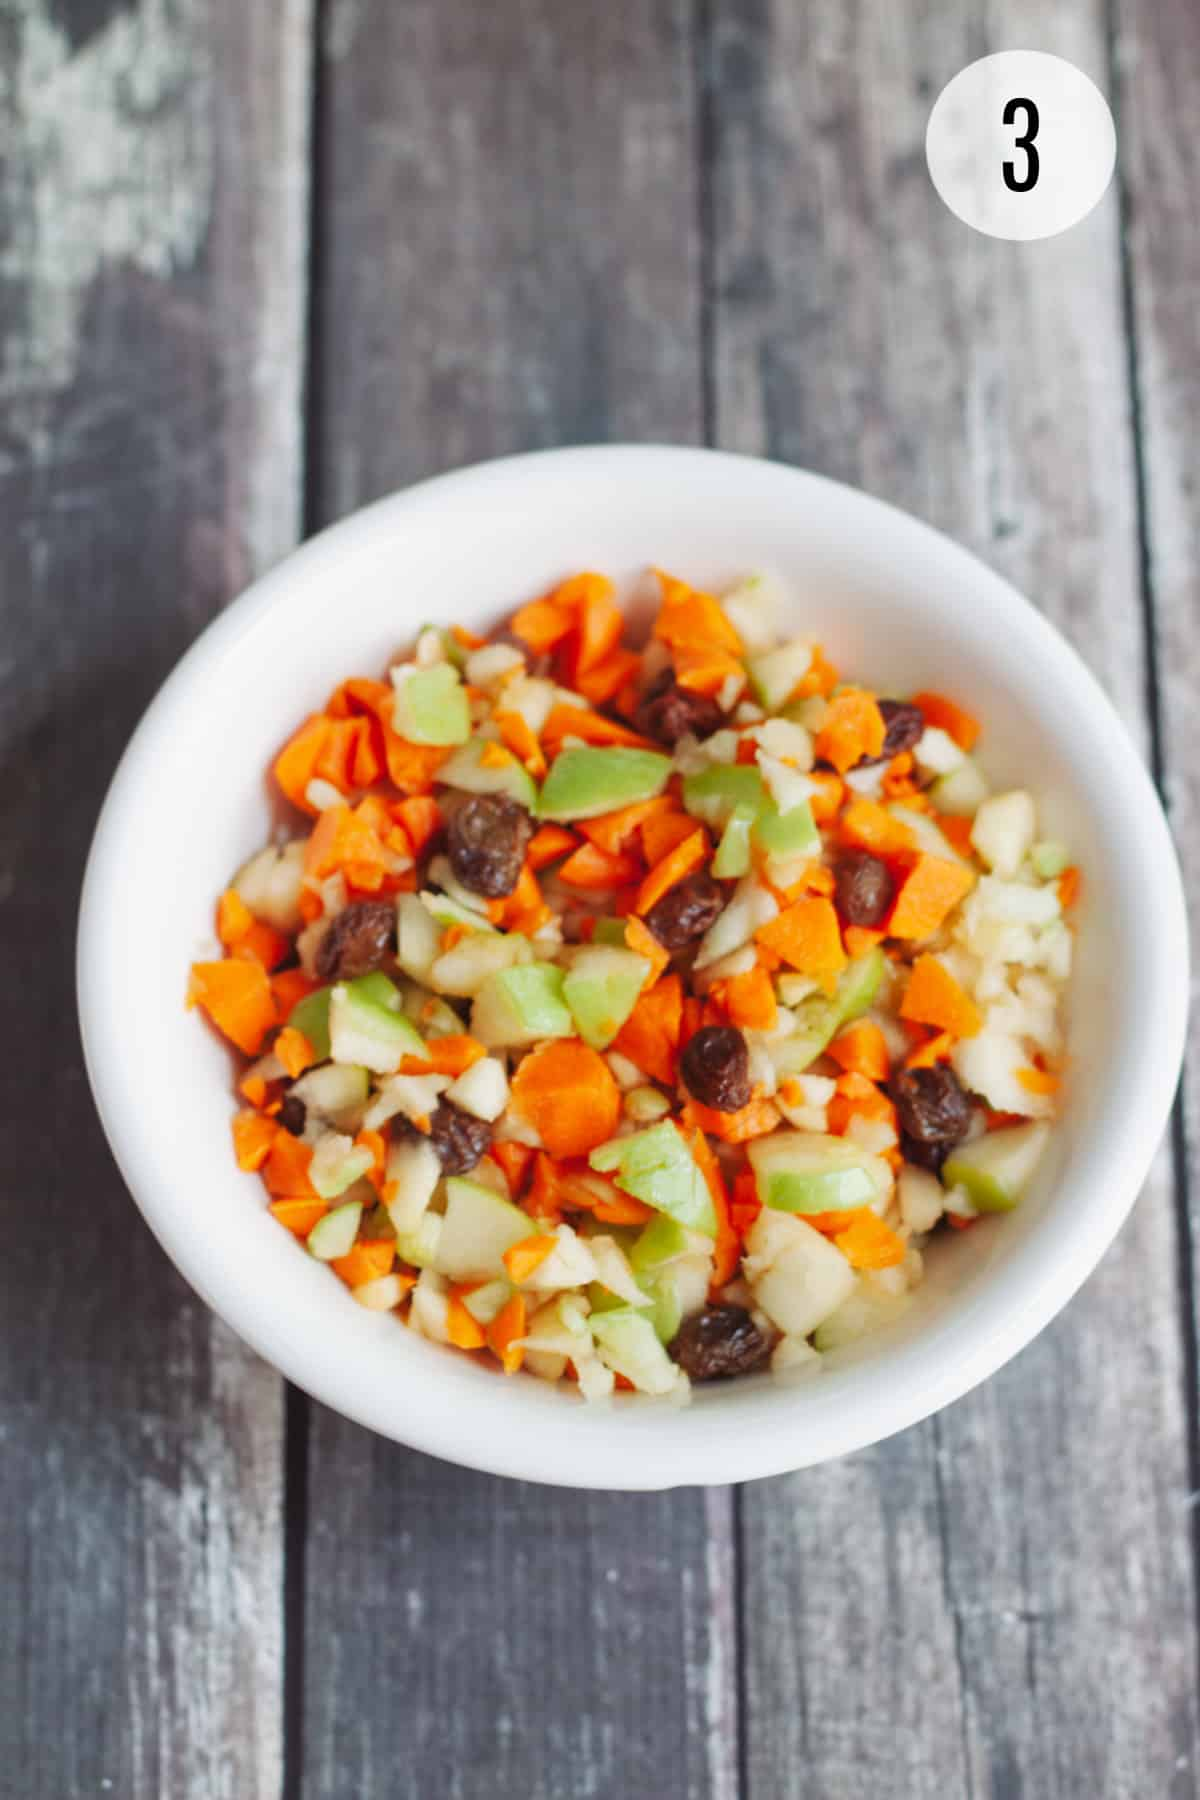 White bowl with Apple Carrot Salad with Raisins on a dark background.